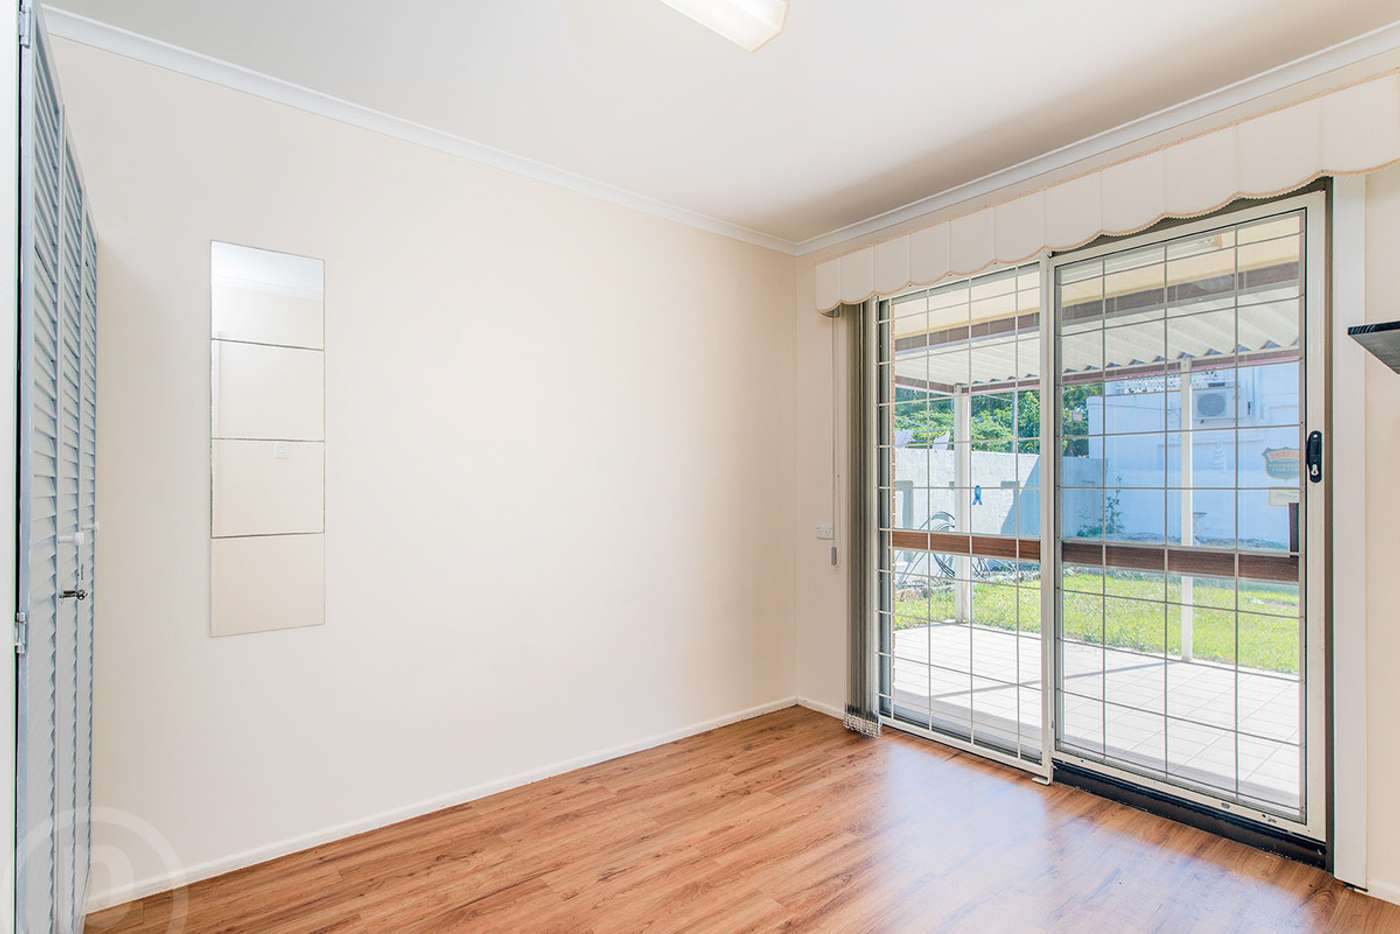 Seventh view of Homely house listing, 6 Arcoona Street, Sunnybank QLD 4109